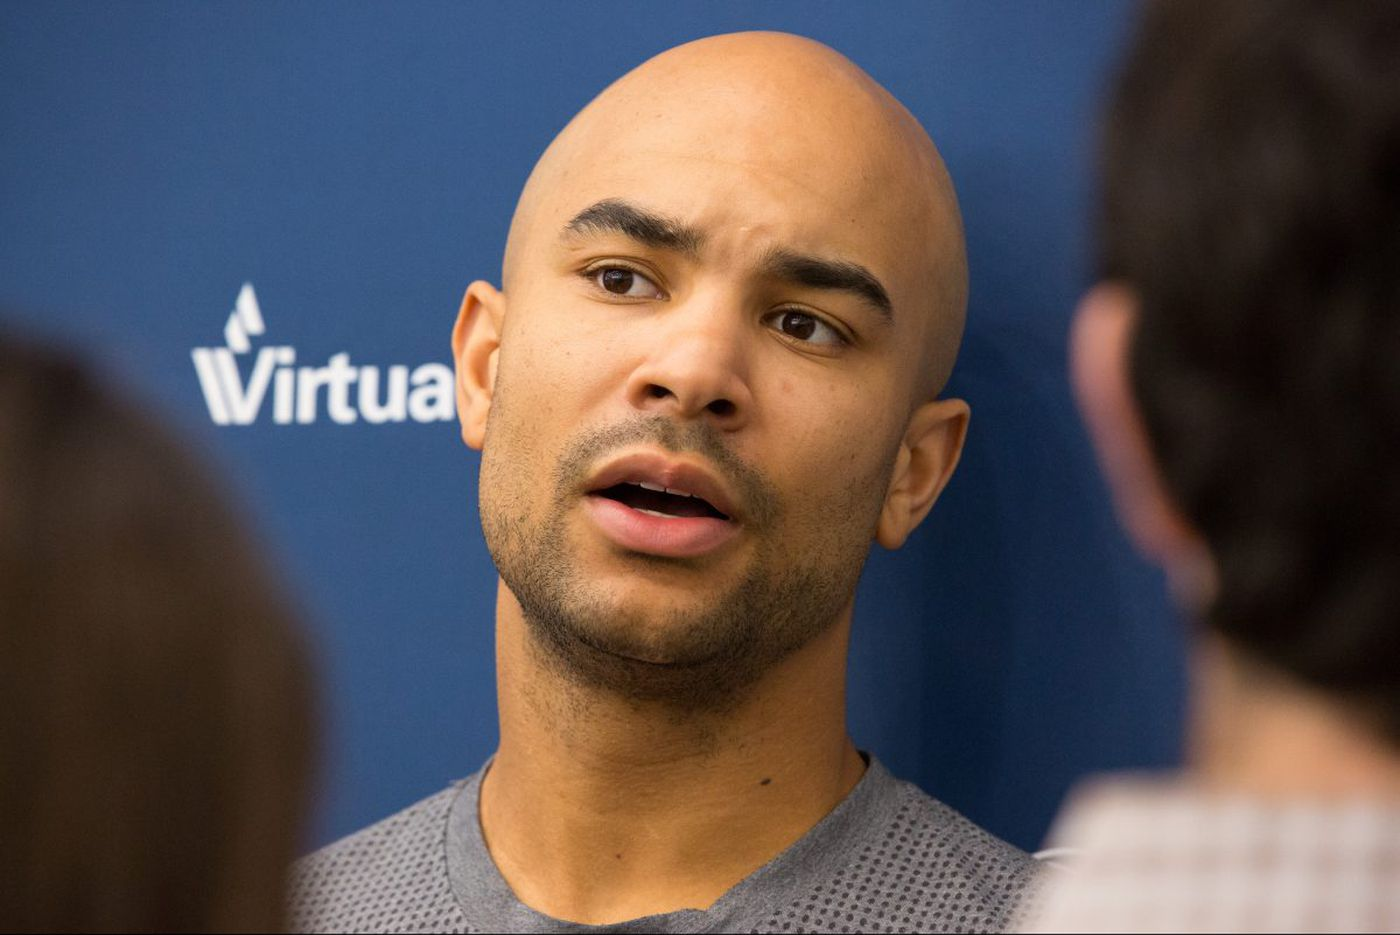 Sixers' Jerryd Bayless criticizes Trump for anthem comments